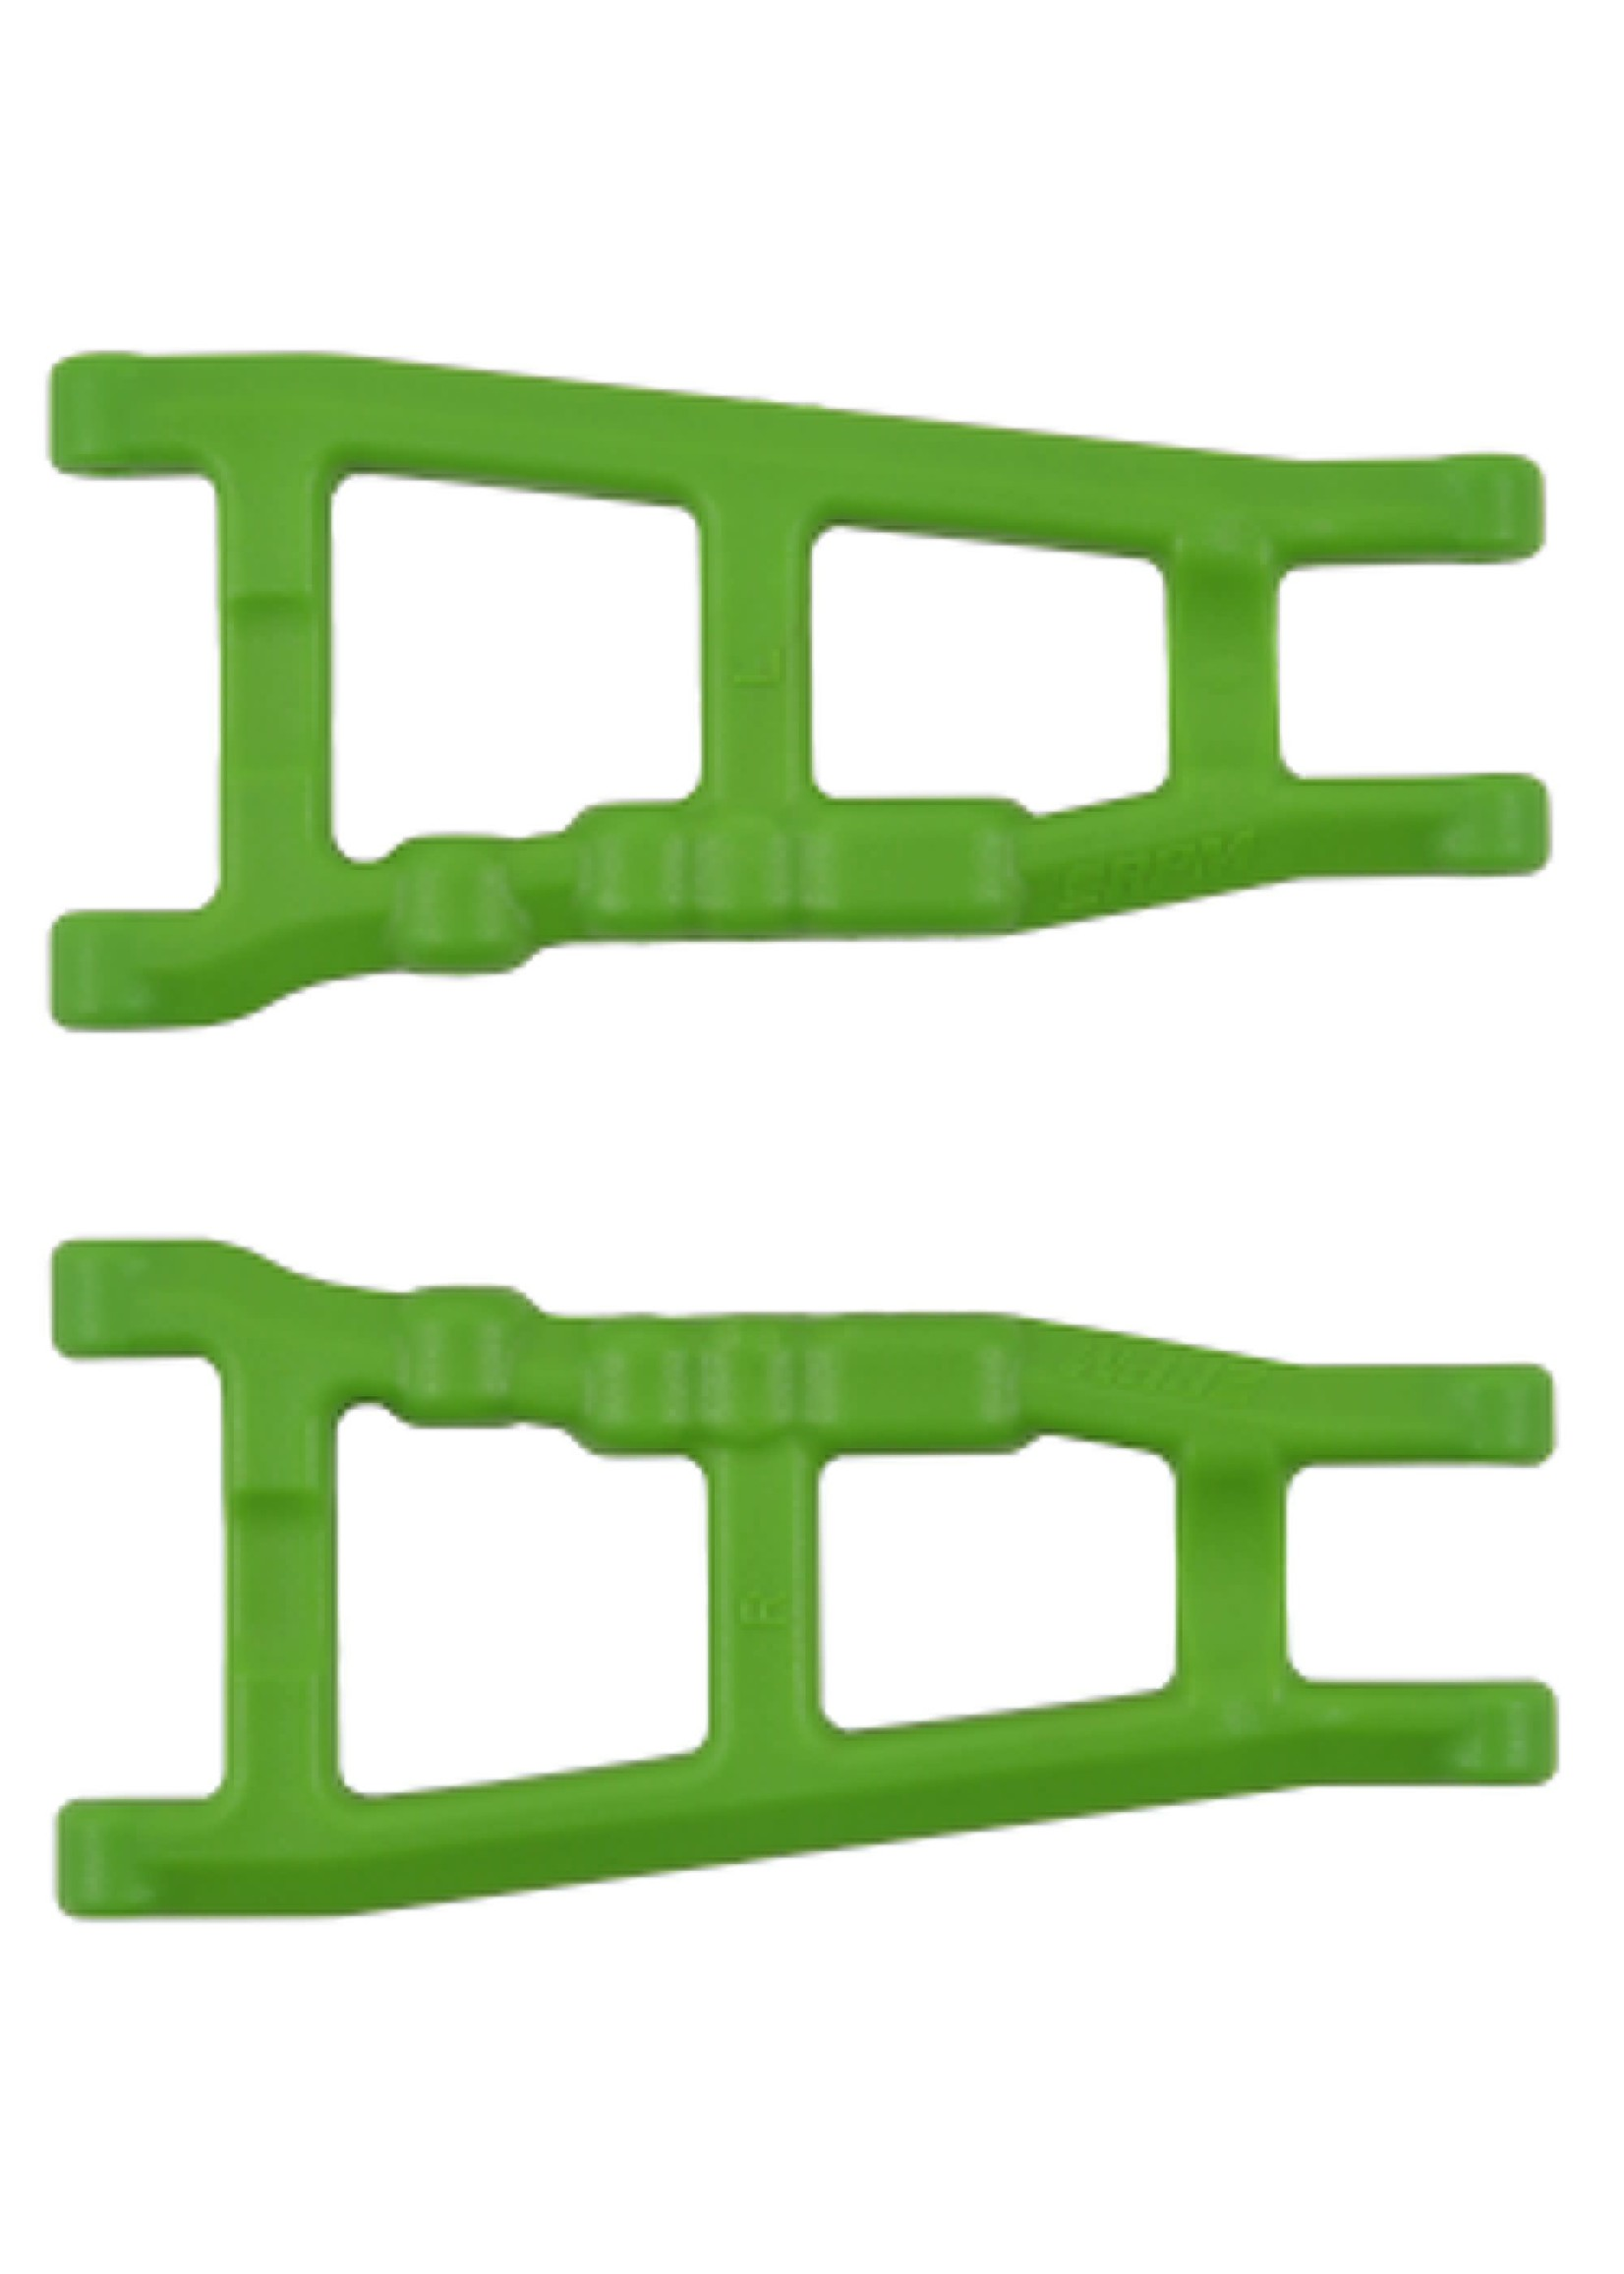 RPM RPM80704 RPM Front or Rear A-Arms for Traxxas Slash 4x4 and Rustler 4x4, Green